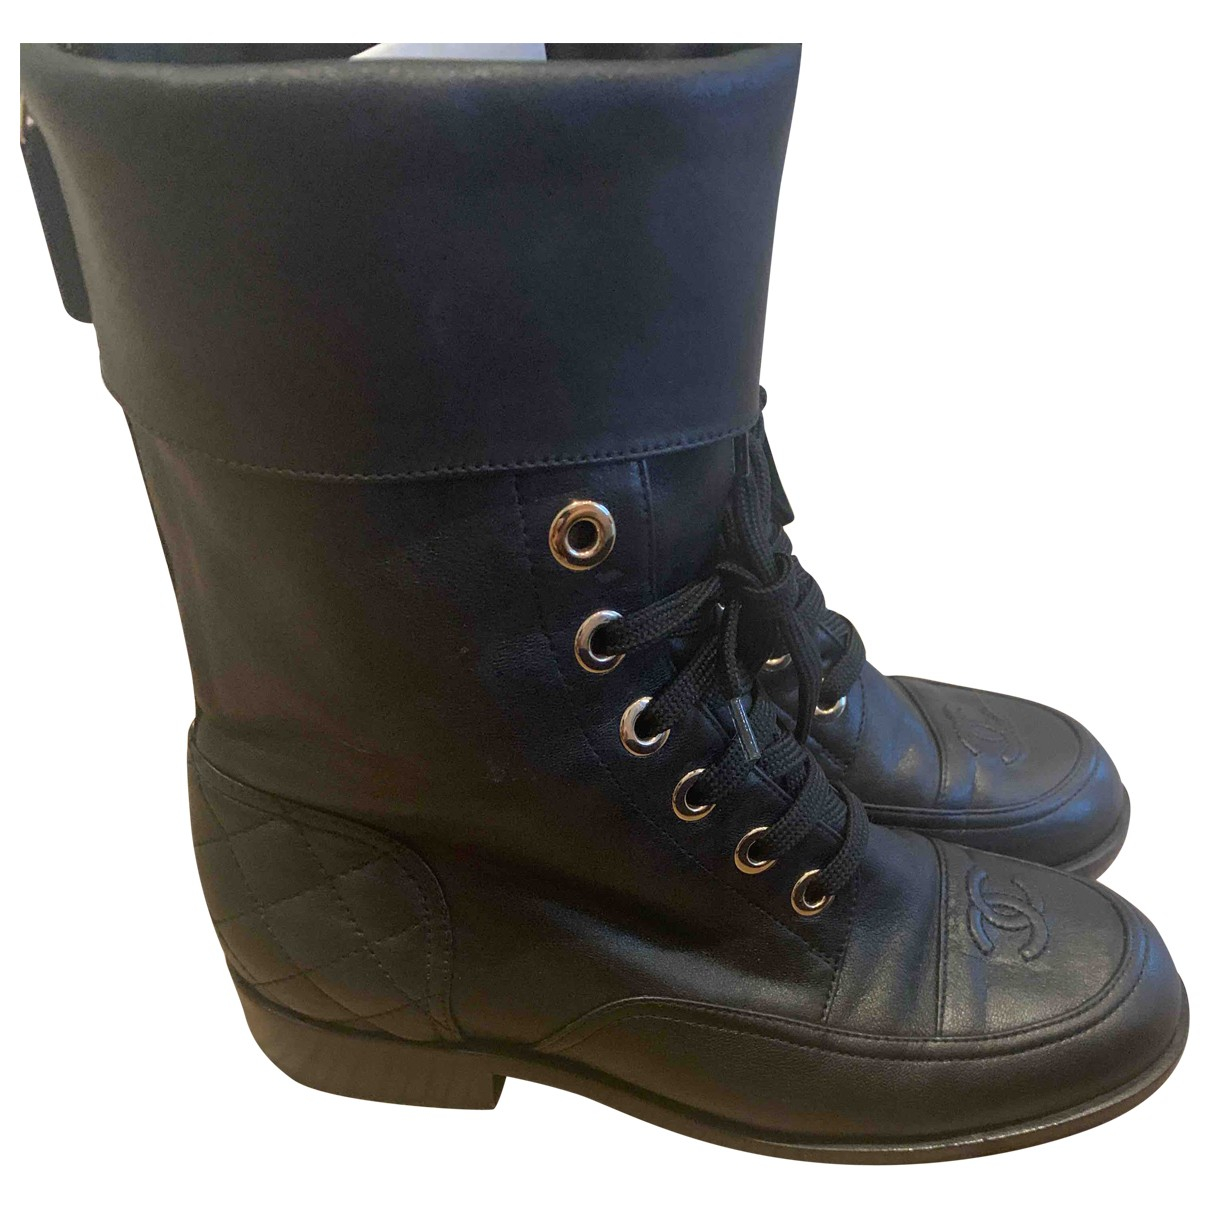 Chanel \N Black Leather Boots for Women 36 EU